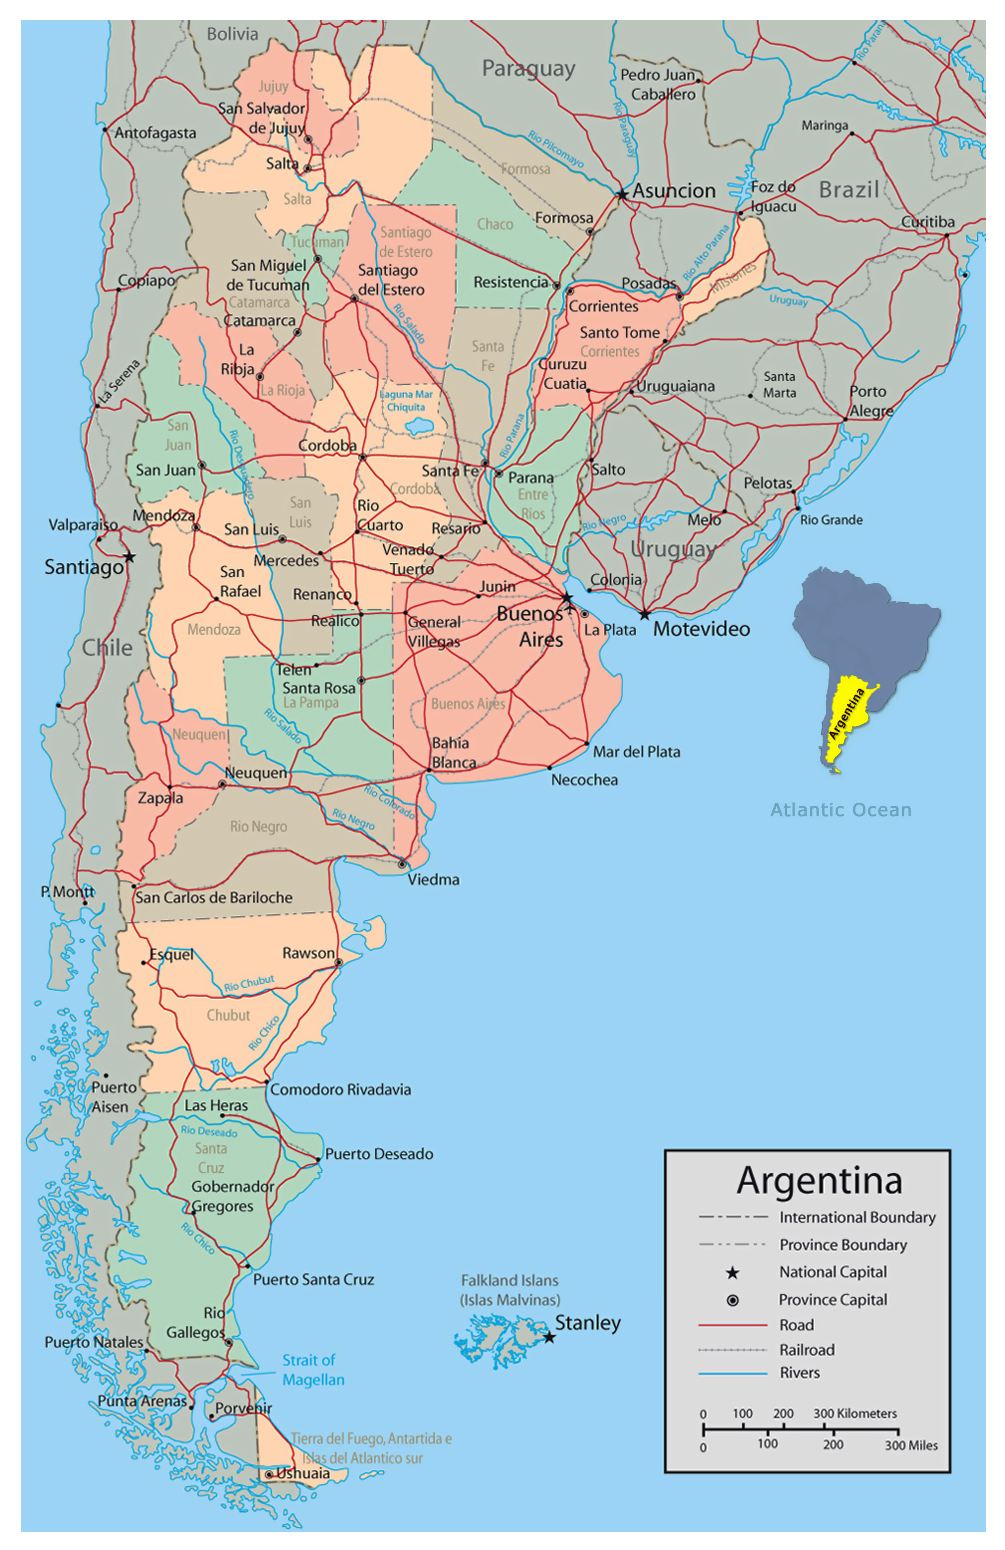 Cities in Argentina, Argentina Cities Map - Maps of World